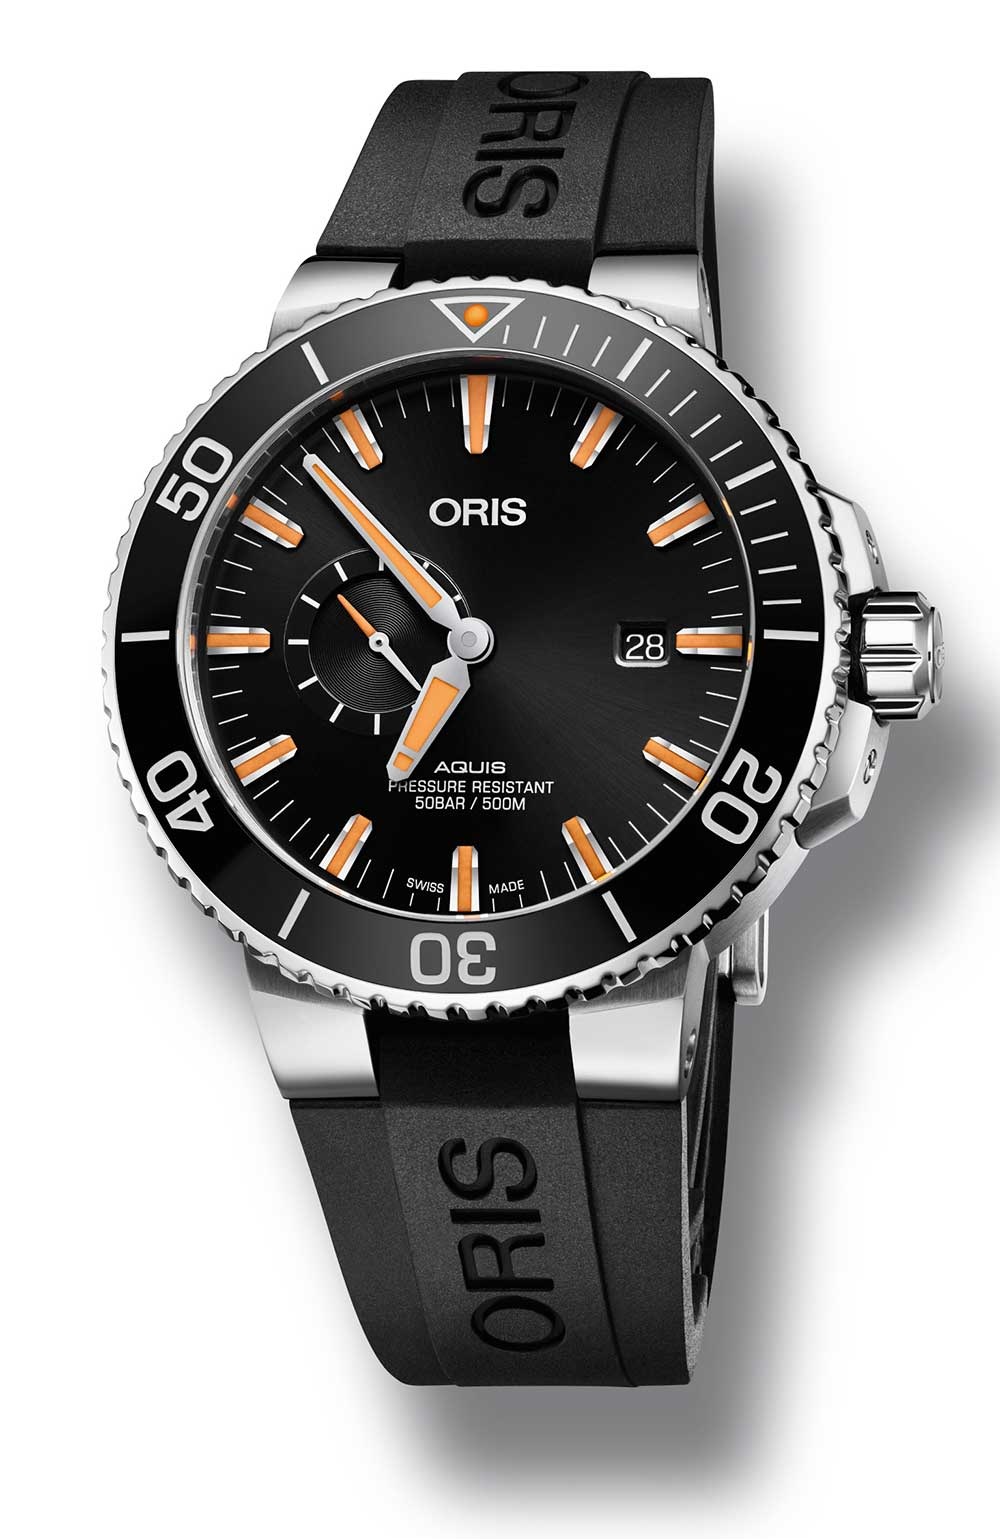 Oris Aquis Small Second Date Diver Ref. N° 01 743 7733 4159 RS, 45,50 mm